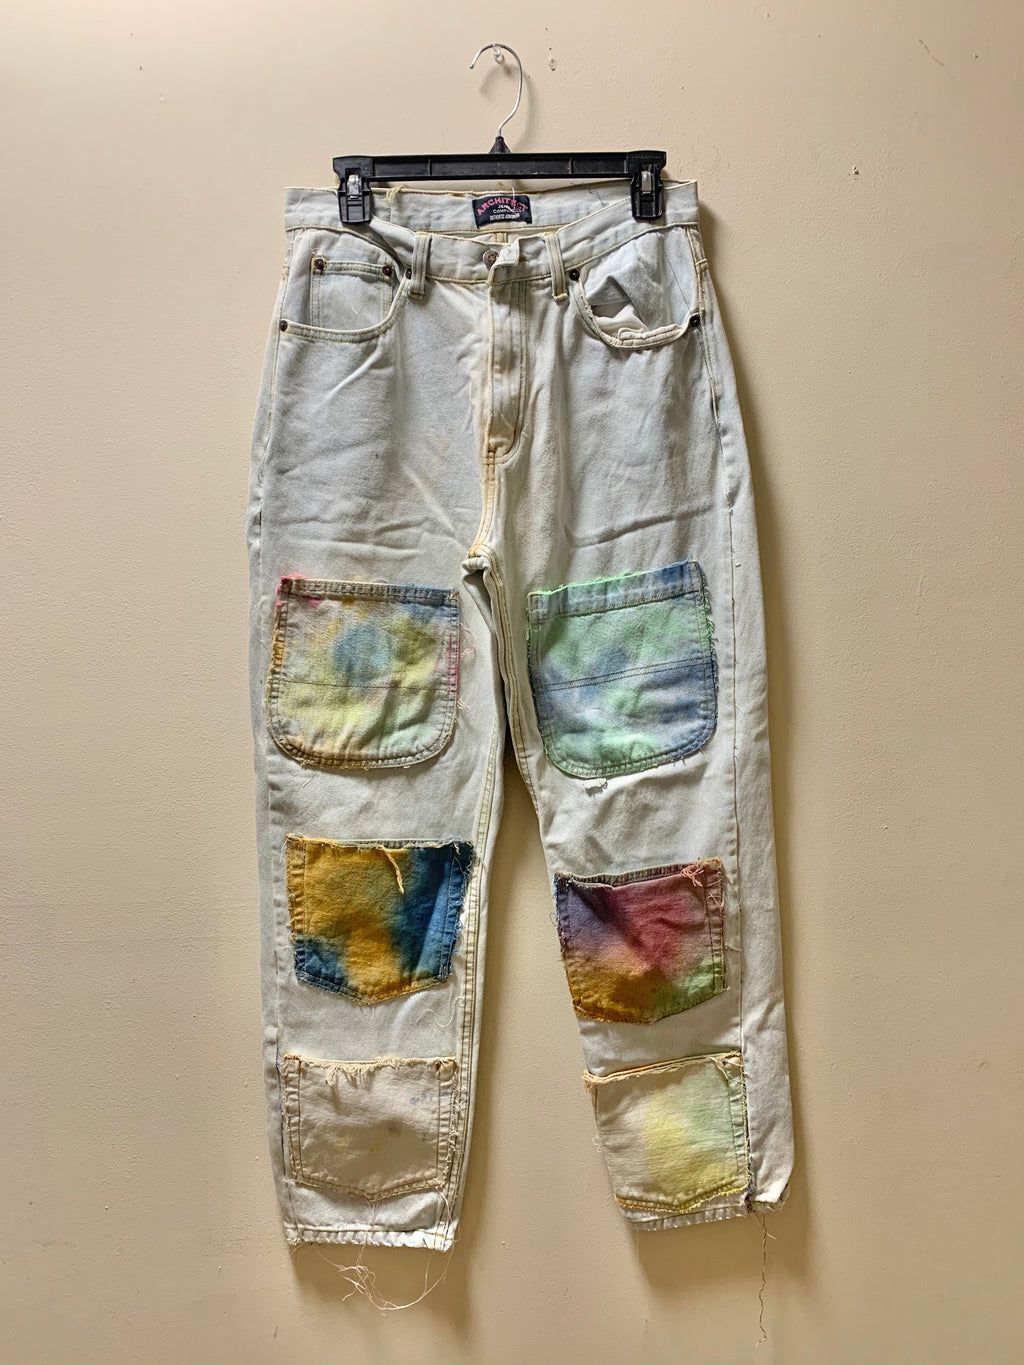 1/1 hand dyed pocketed denim size 32x30